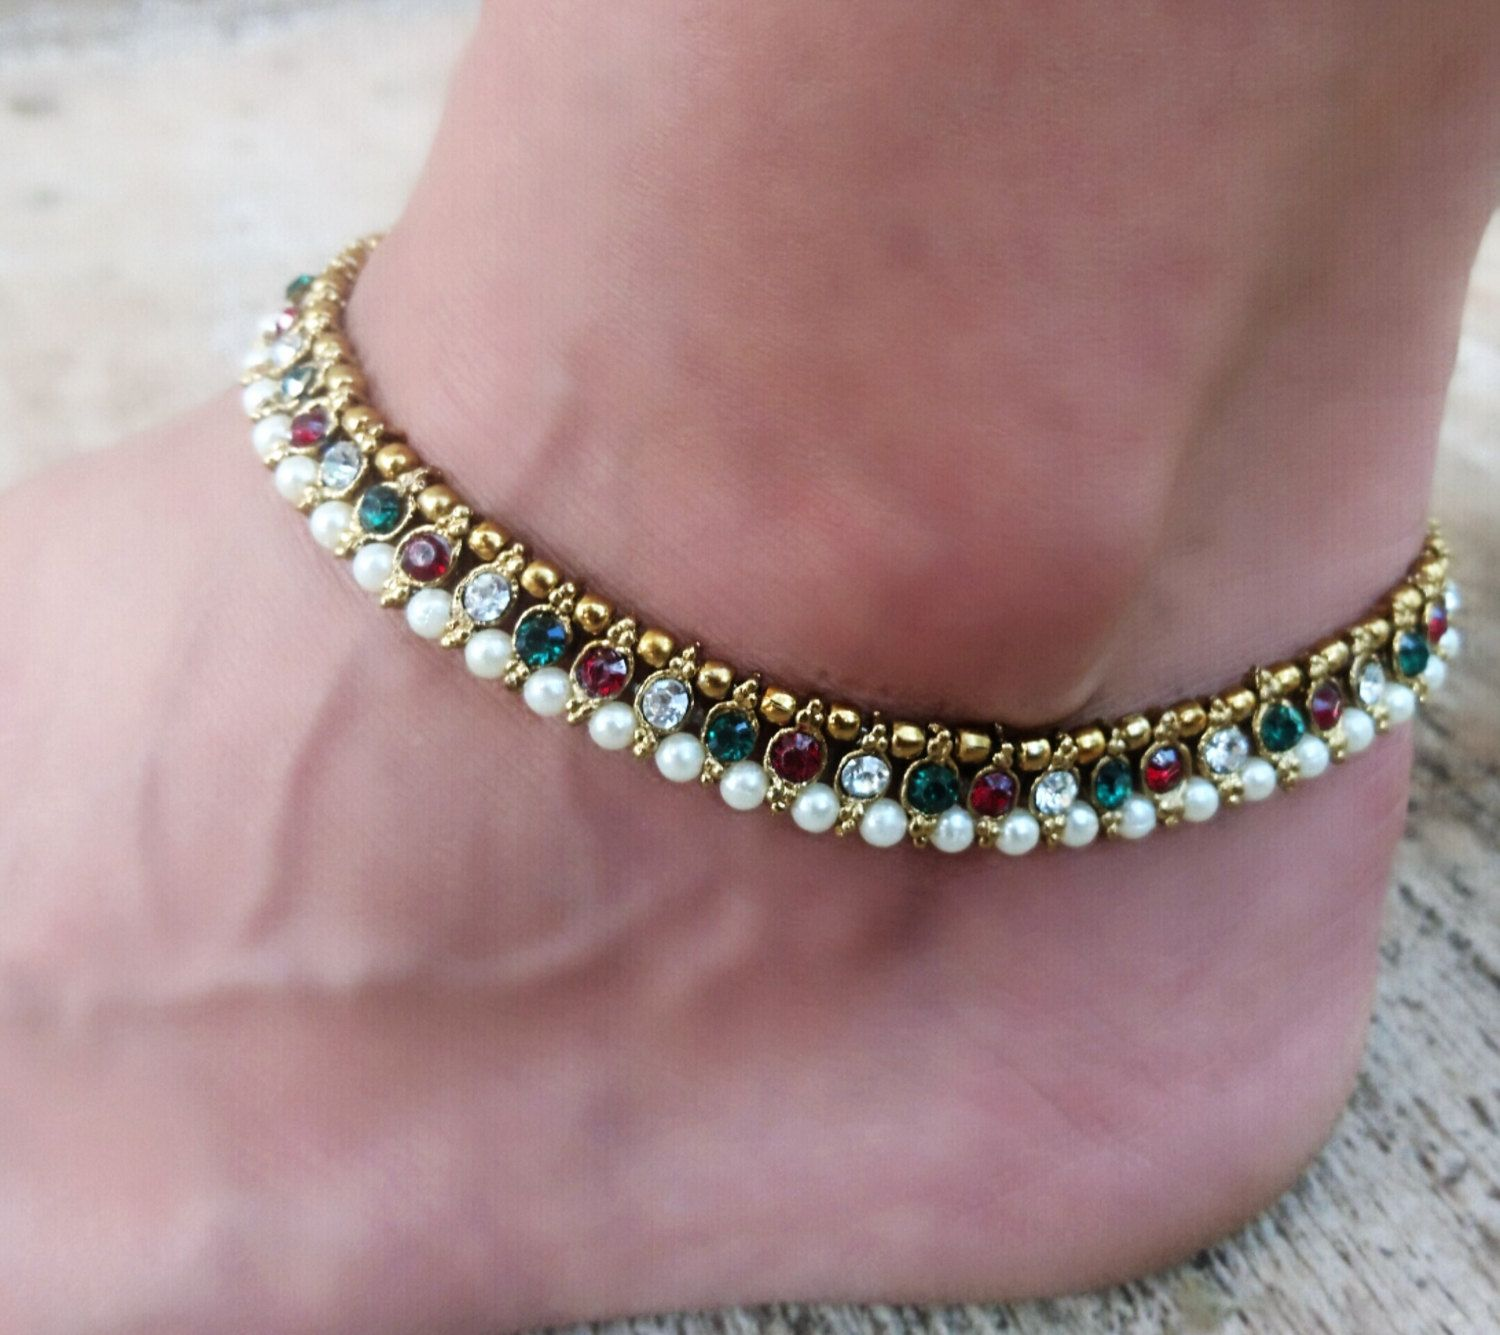 jewelry designer wearing designs girls ladies ideas anklets new nationtrendz anklet com for